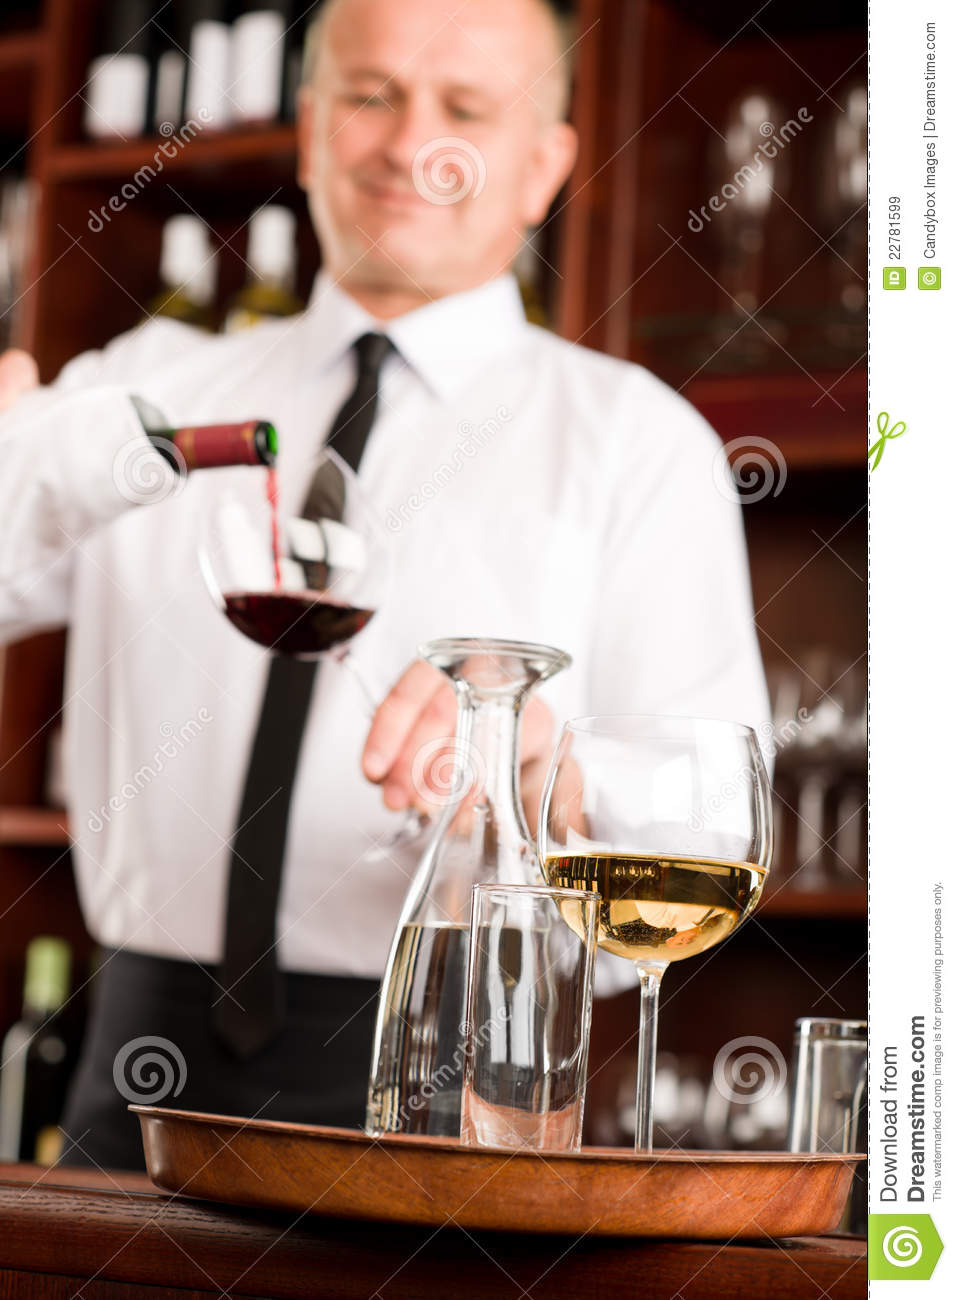 wine bar waiter pour glass in restaurant stock image